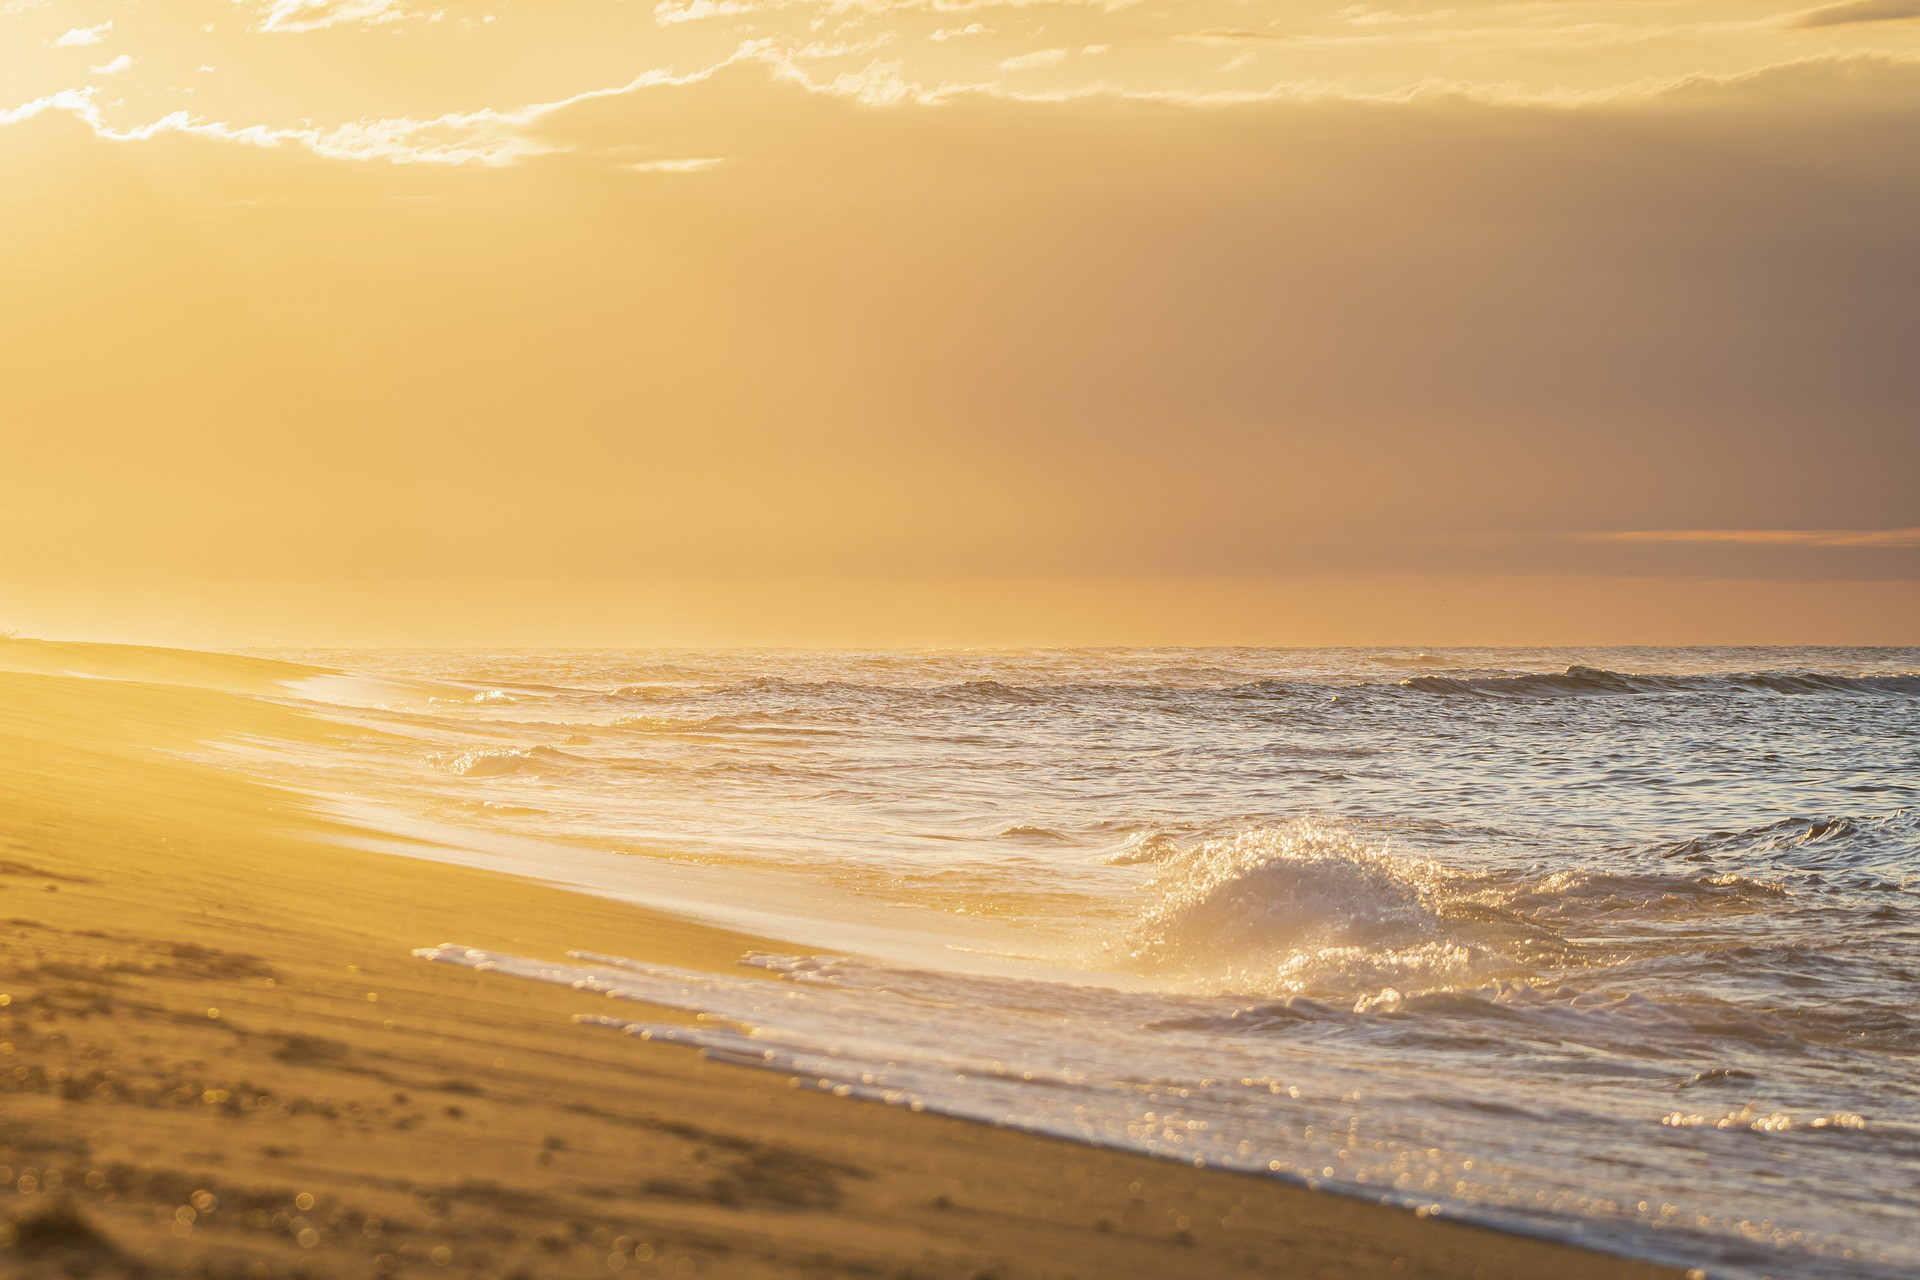 Sandy beach at sunrise. Gentle waves lapping at the shore against a backdrop of clouds